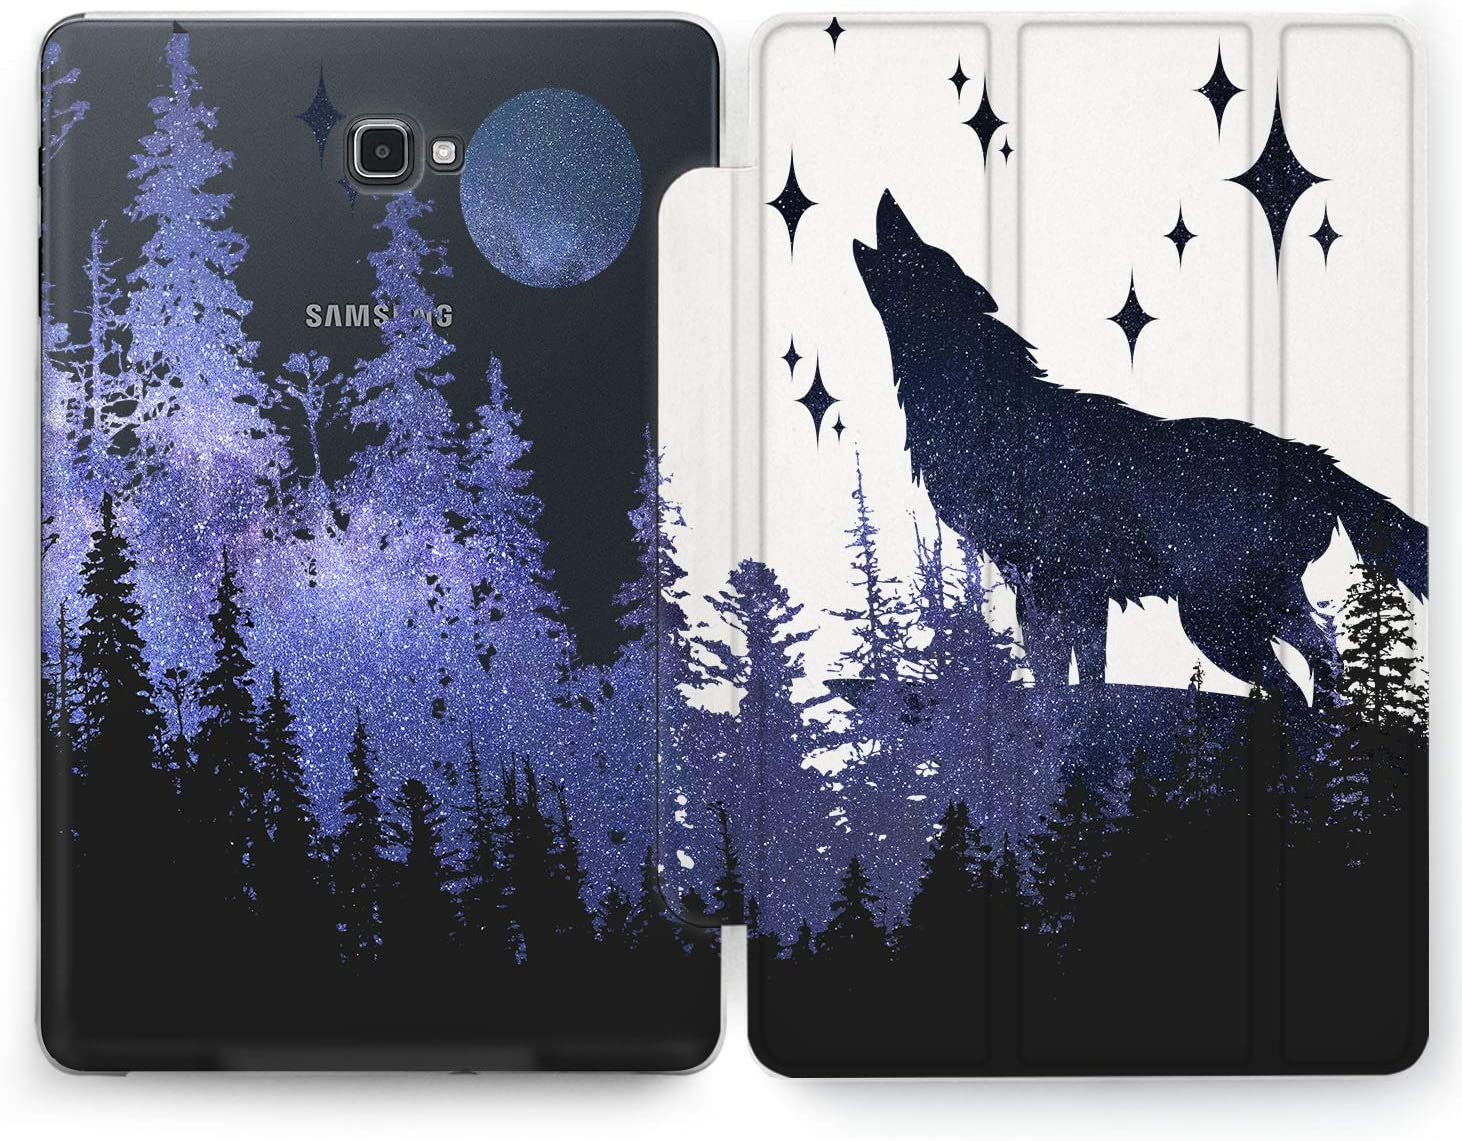 Wonder Wild Night Wolf Samsung Galaxy Tab S4 S2 S3 A Smart Stand Case S6 S5e 2019 2017 2018 Tablet Cover 8 Pen 9.7 10.1 10.5 Inch Clear Design Sky Trees Plants Space Blue Forest Purple Nature Beauty